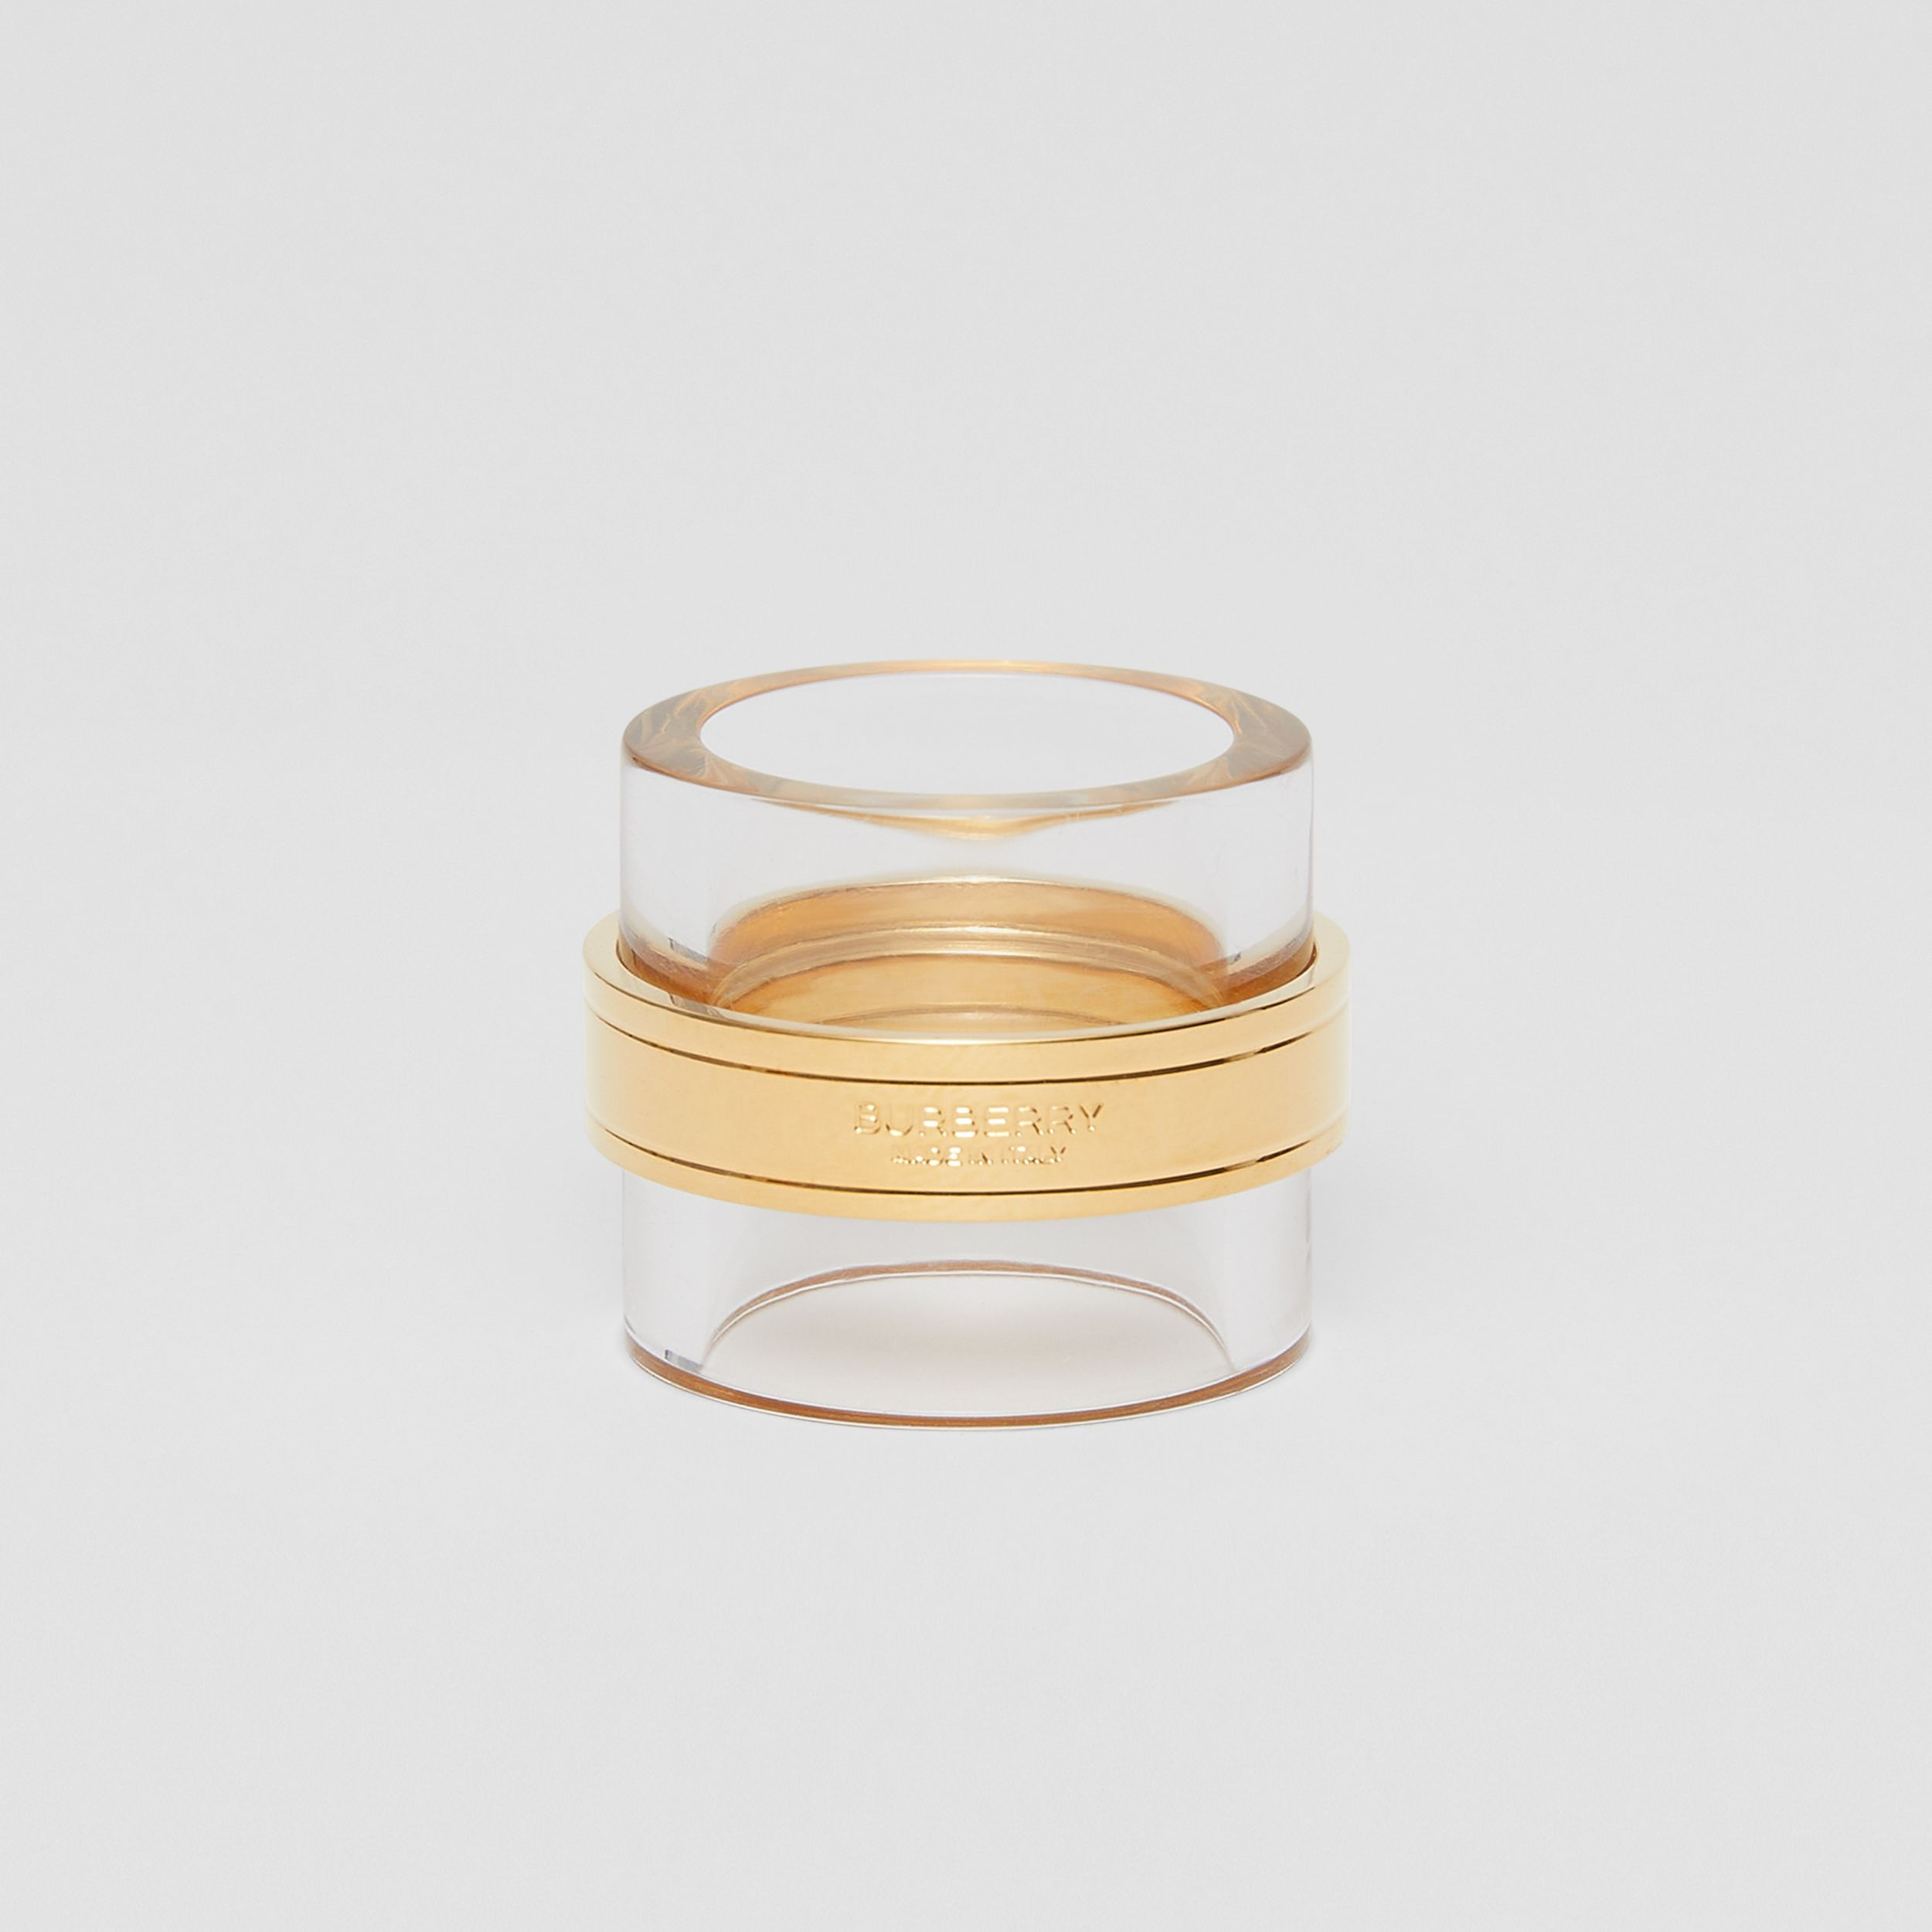 Resin and Gold-plated Cylindrical Ring in Light Gold/beige - Women | Burberry - 3